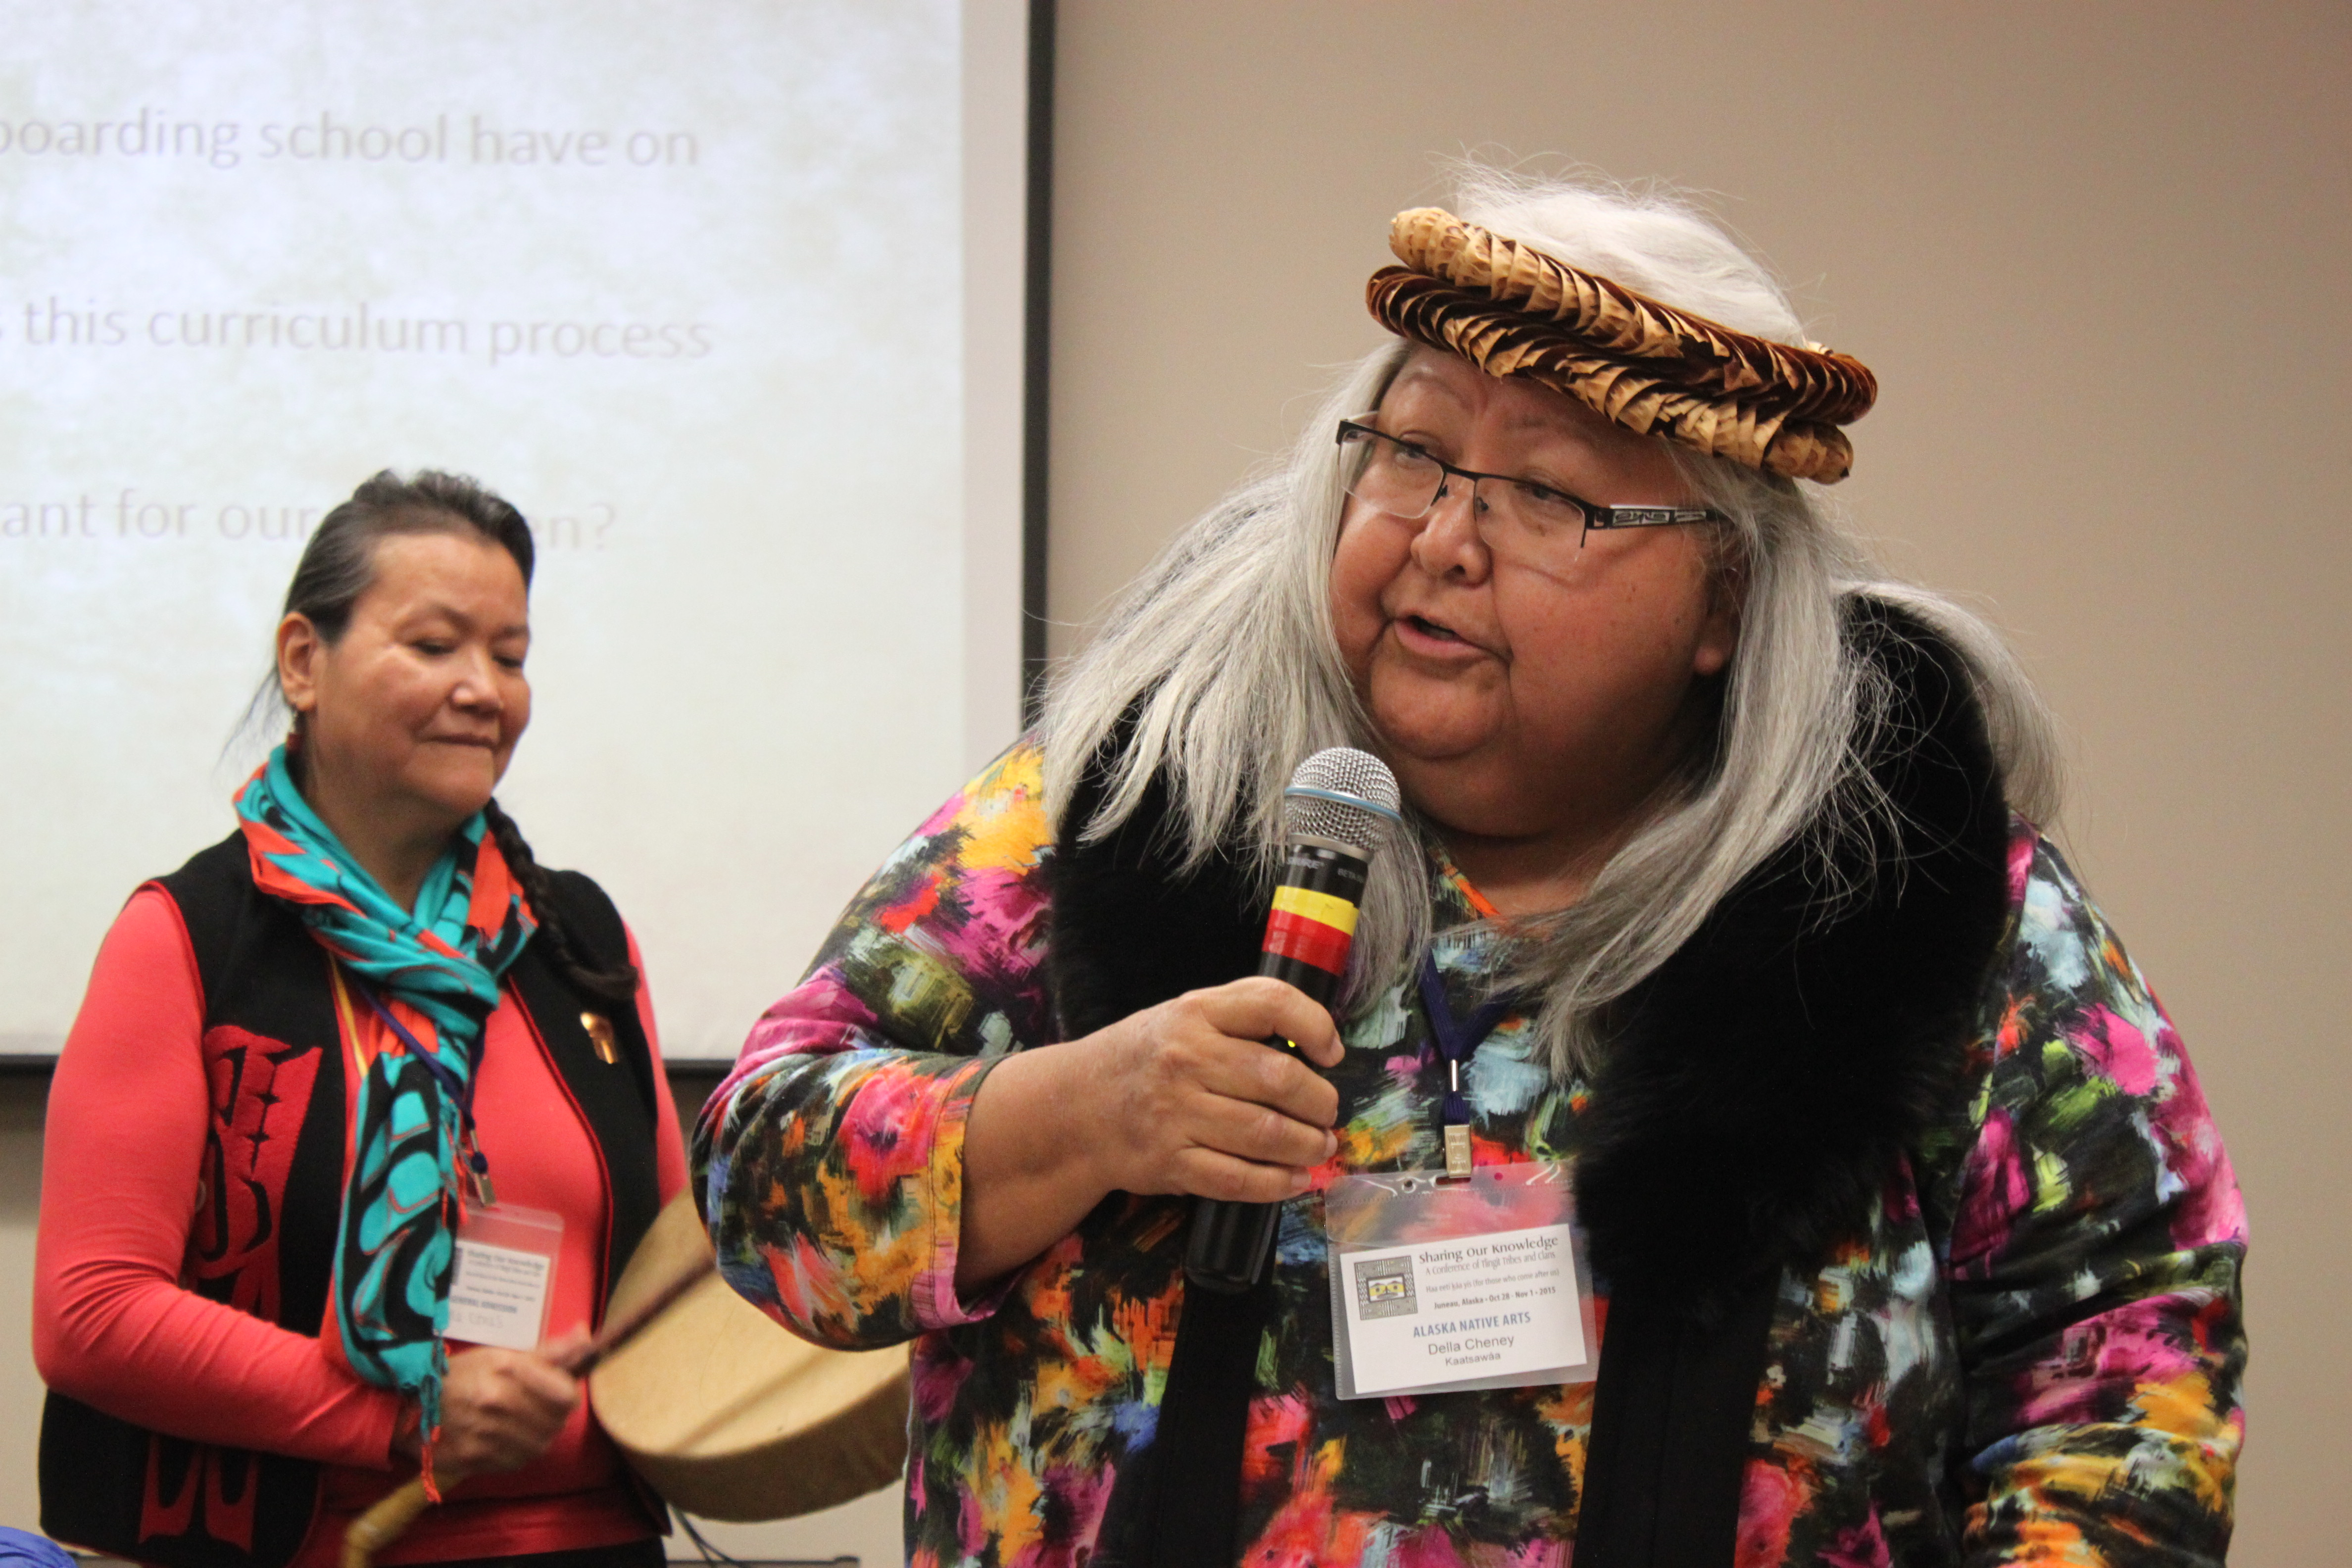 """Tlingit elder Della Cheney talks during a panel discussion on boarding schools at the """"Sharing Our Knowledge; A Conference of Tlingit Tribes & Clans."""" In the 1920s and 1930s, Cheney's parents attended Sheldon Jackson School in Sitka. (Photo by Lisa Phu/KTOO)"""